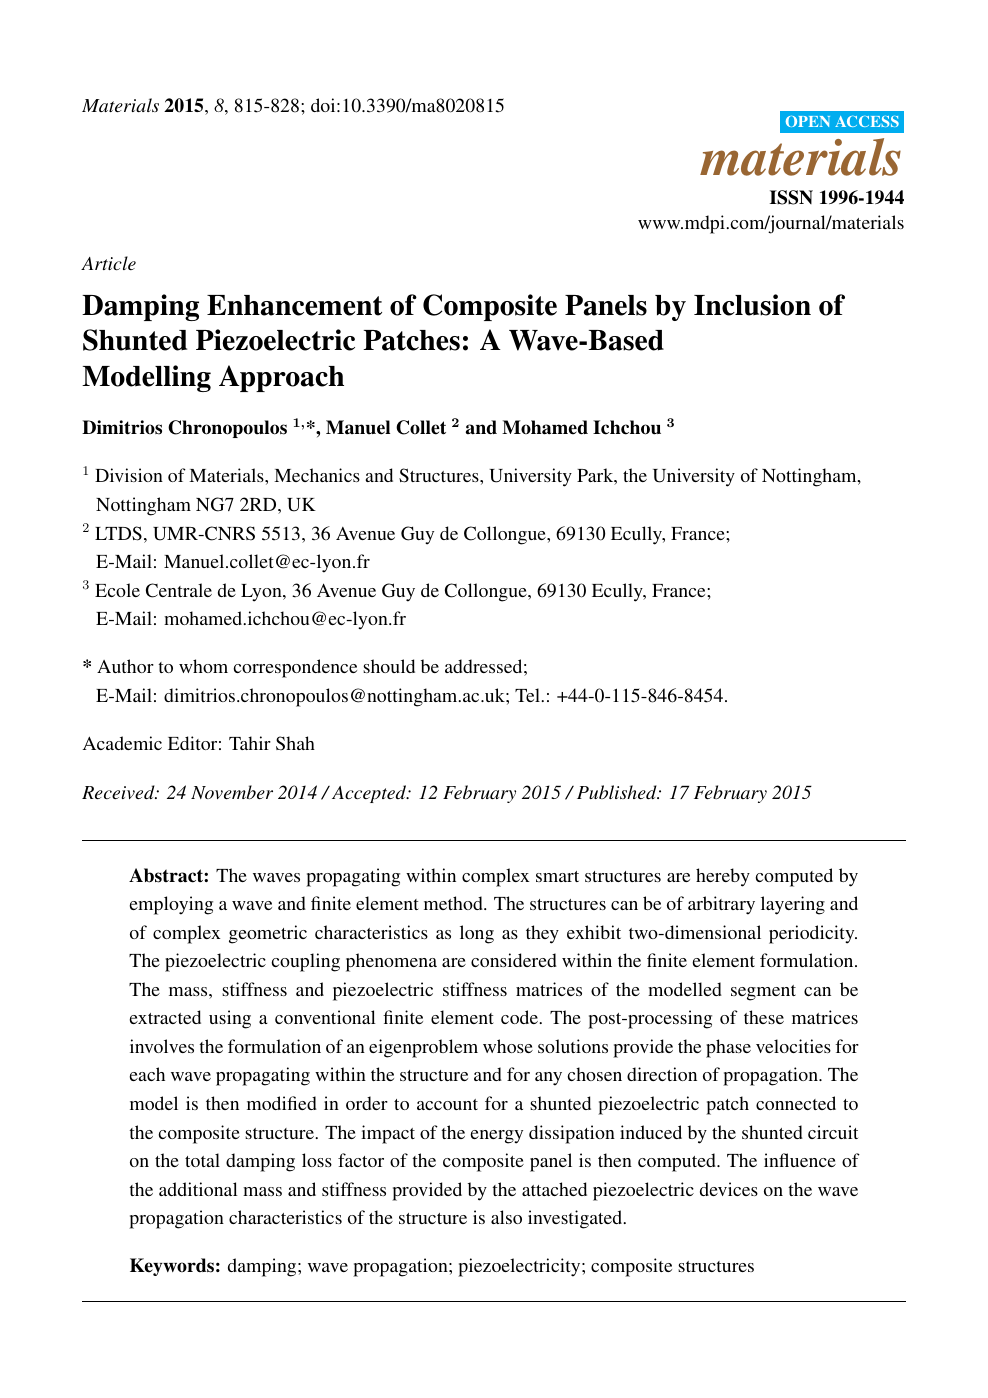 Damping Enhancement of Composite Panels by Inclusion of Shunted